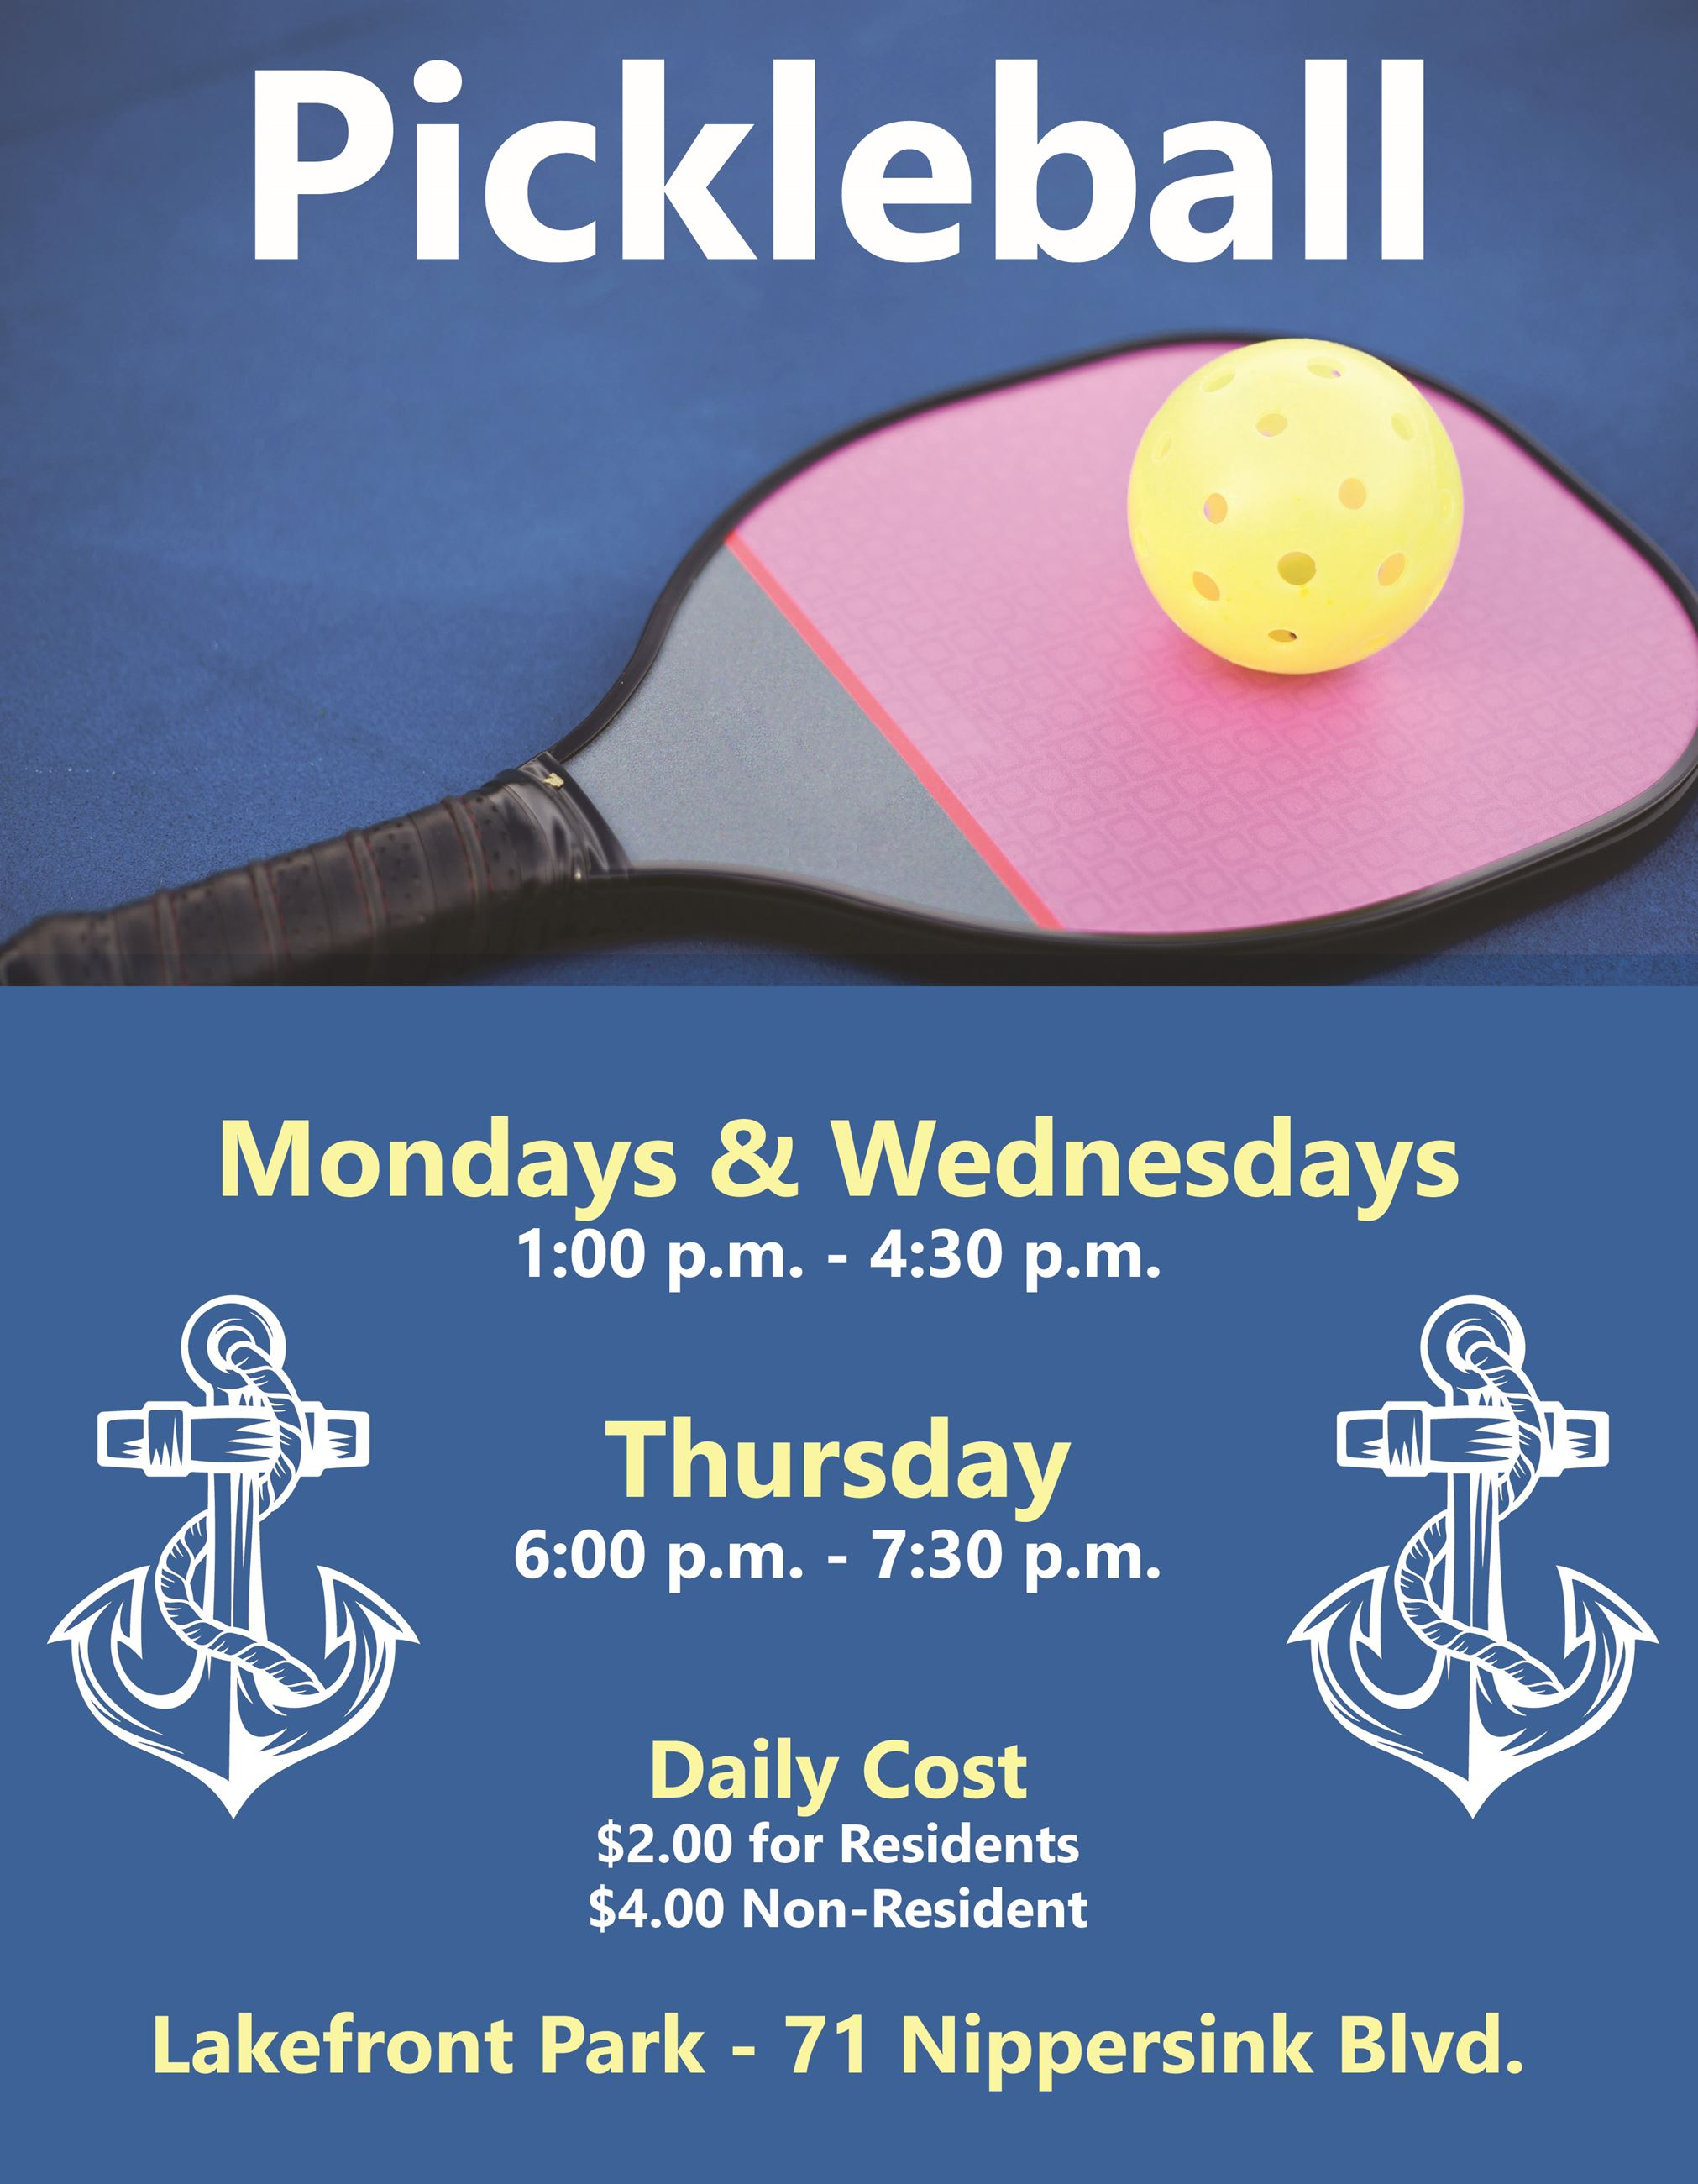 Evening Pickleball